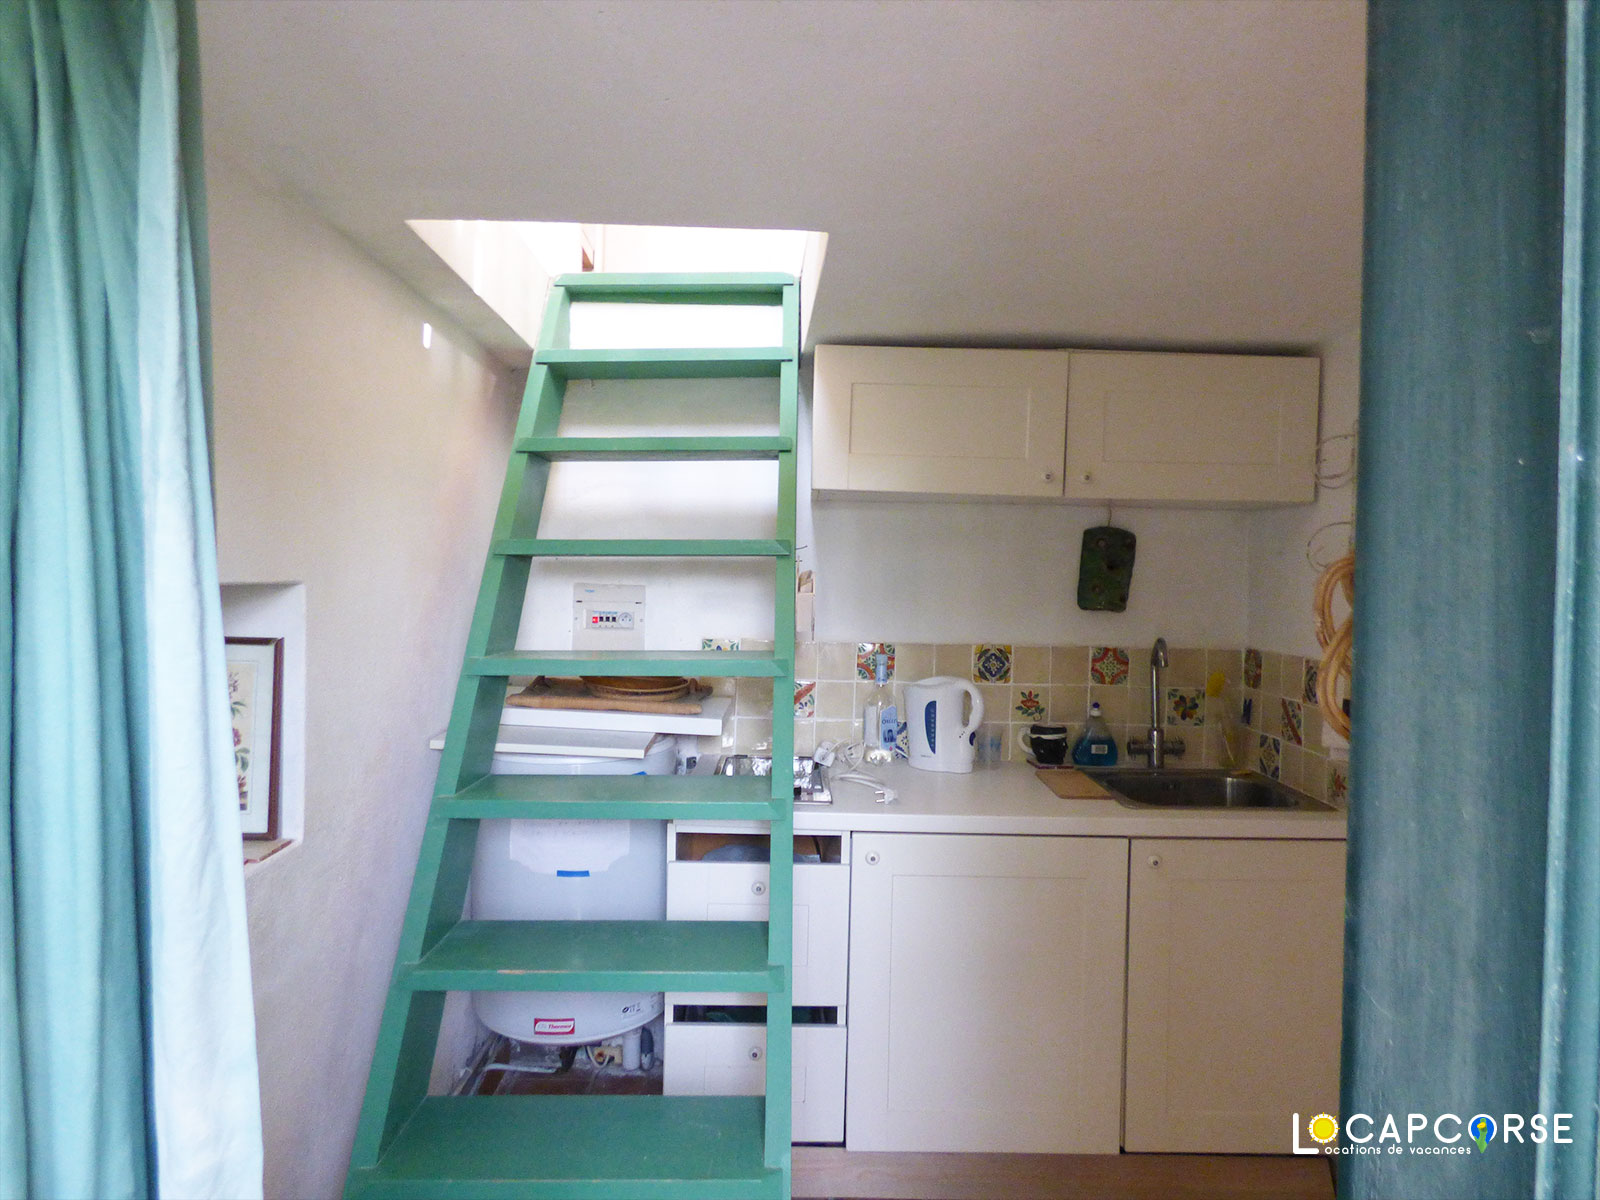 Locations Cap Corse - The kitchenette of the cottage and the internal staircase accessing the bedroom